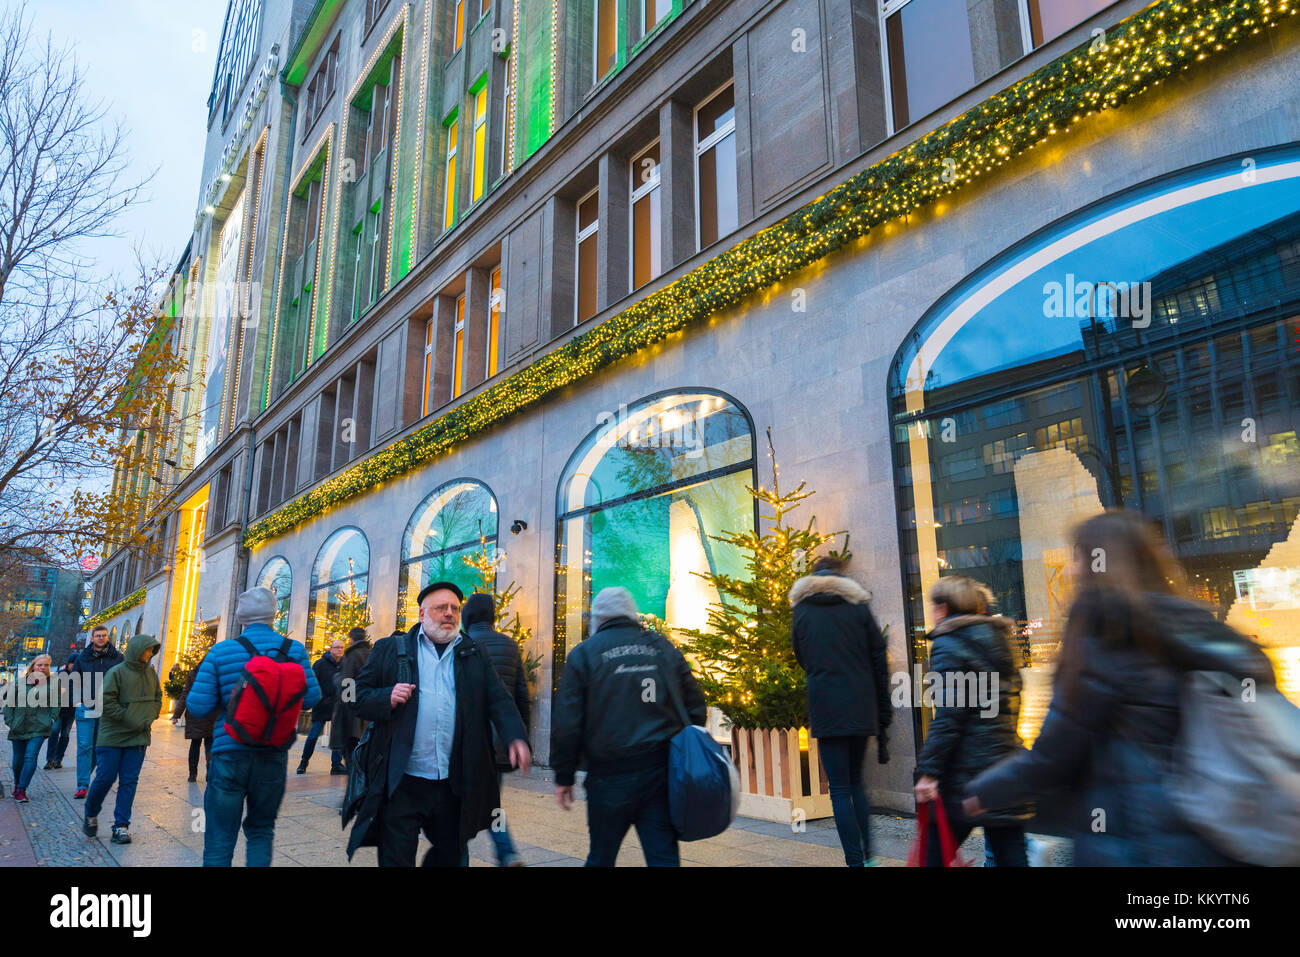 Busy street outside famous KaDeWe department store at Christmas in Berlin, Germany - Stock Image